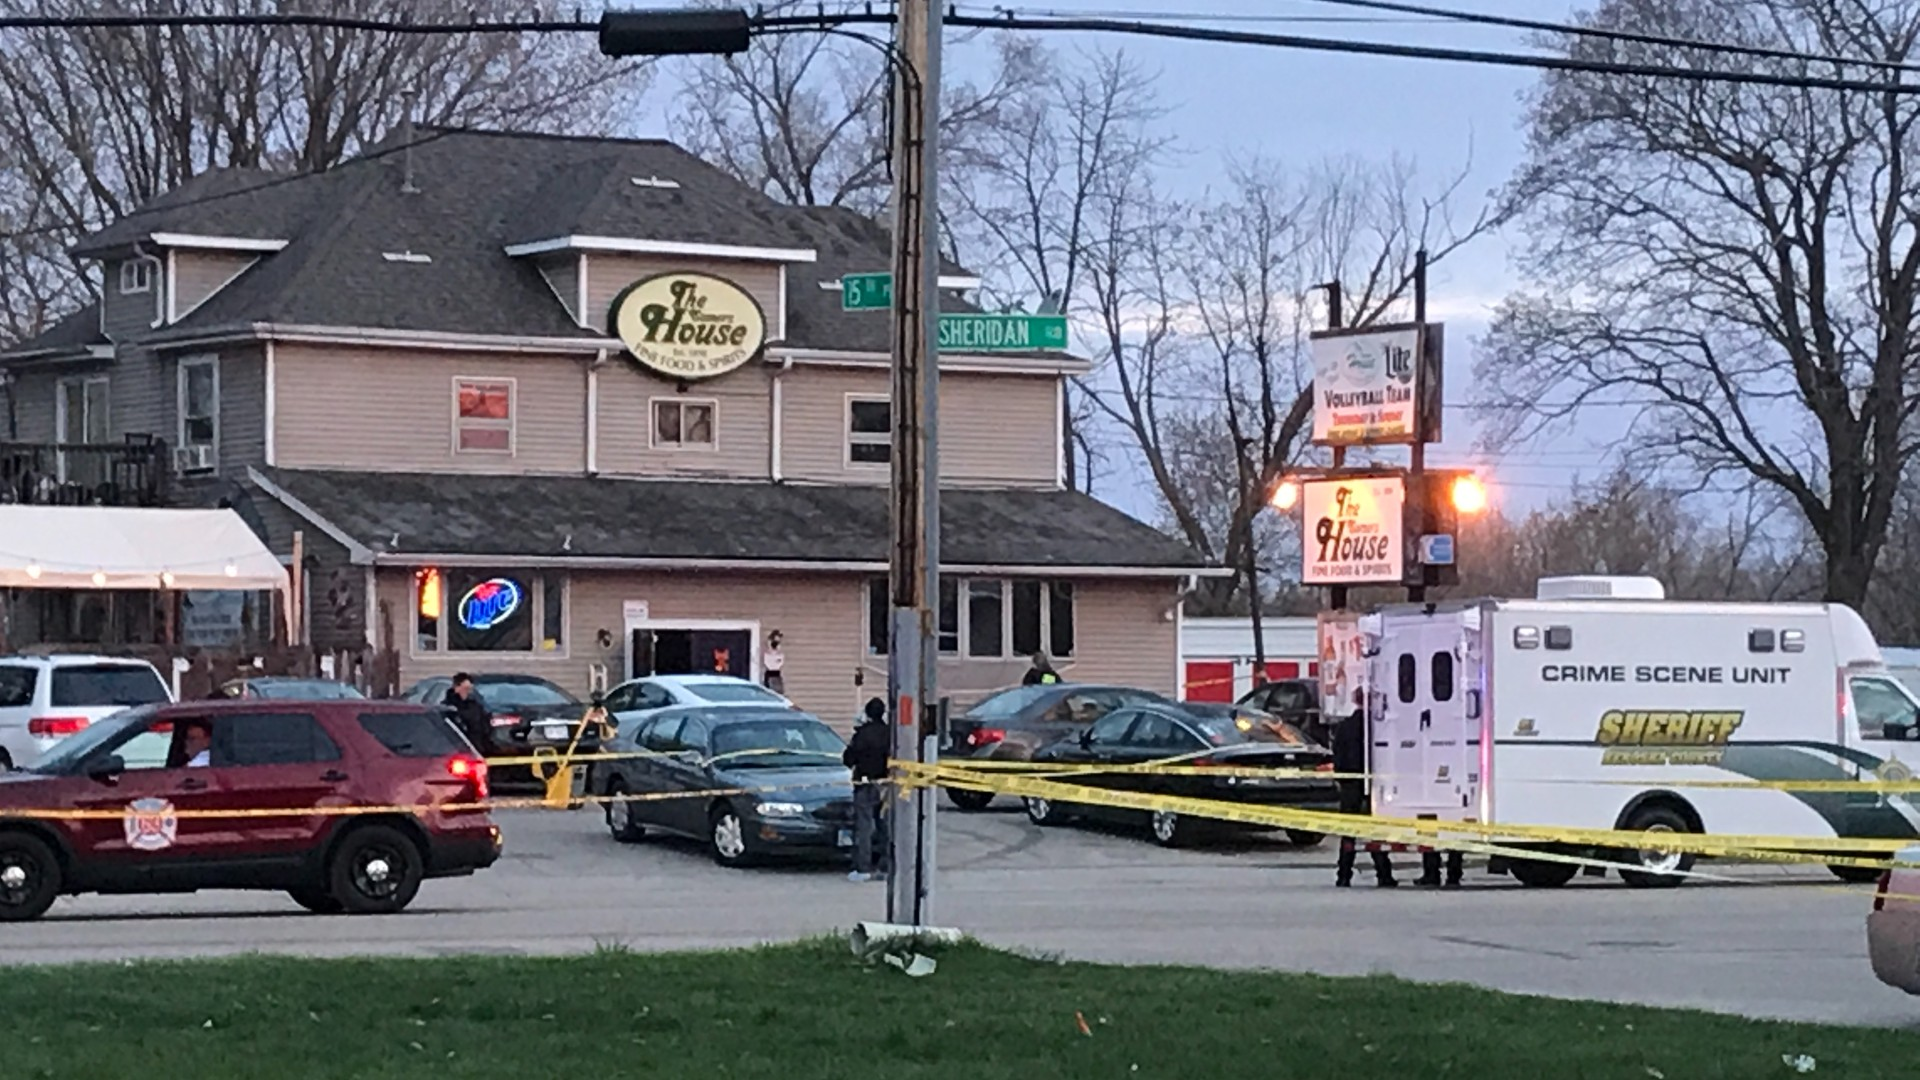 'Senseless tragedy': Gov. Evers responds to Somers House Tavern shooting